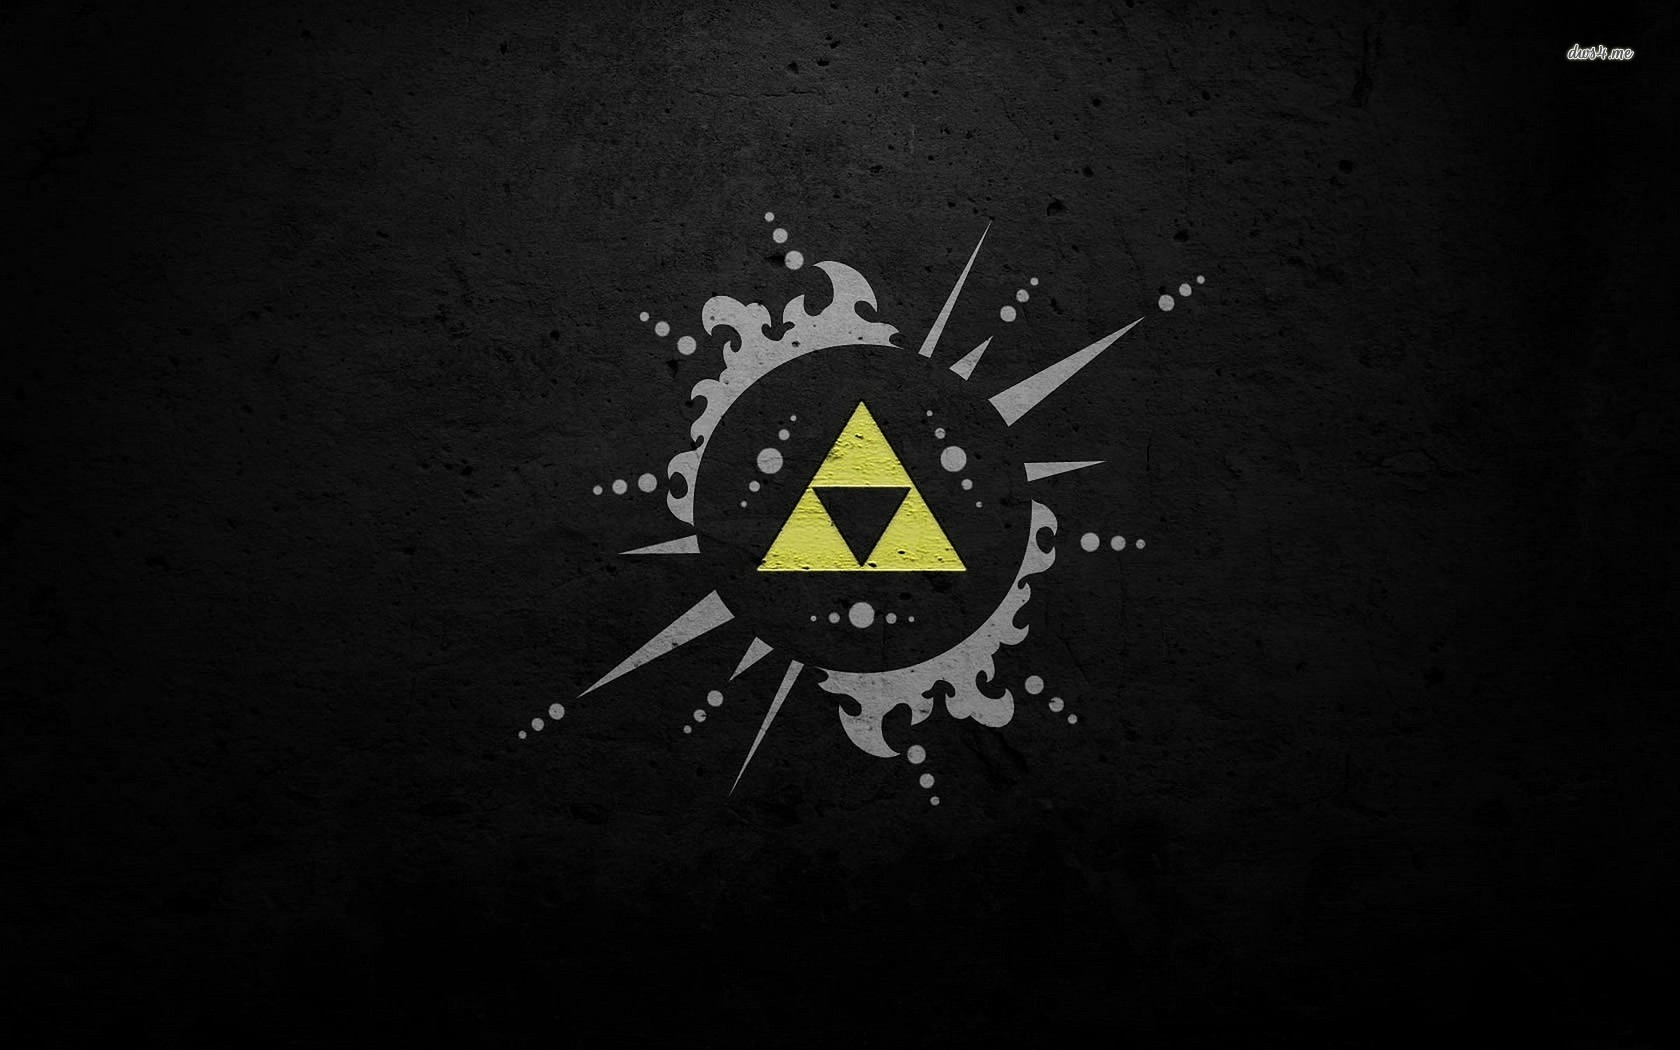 Awesome Zelda HD Wallpaper Pack 857 download in 1680x1050